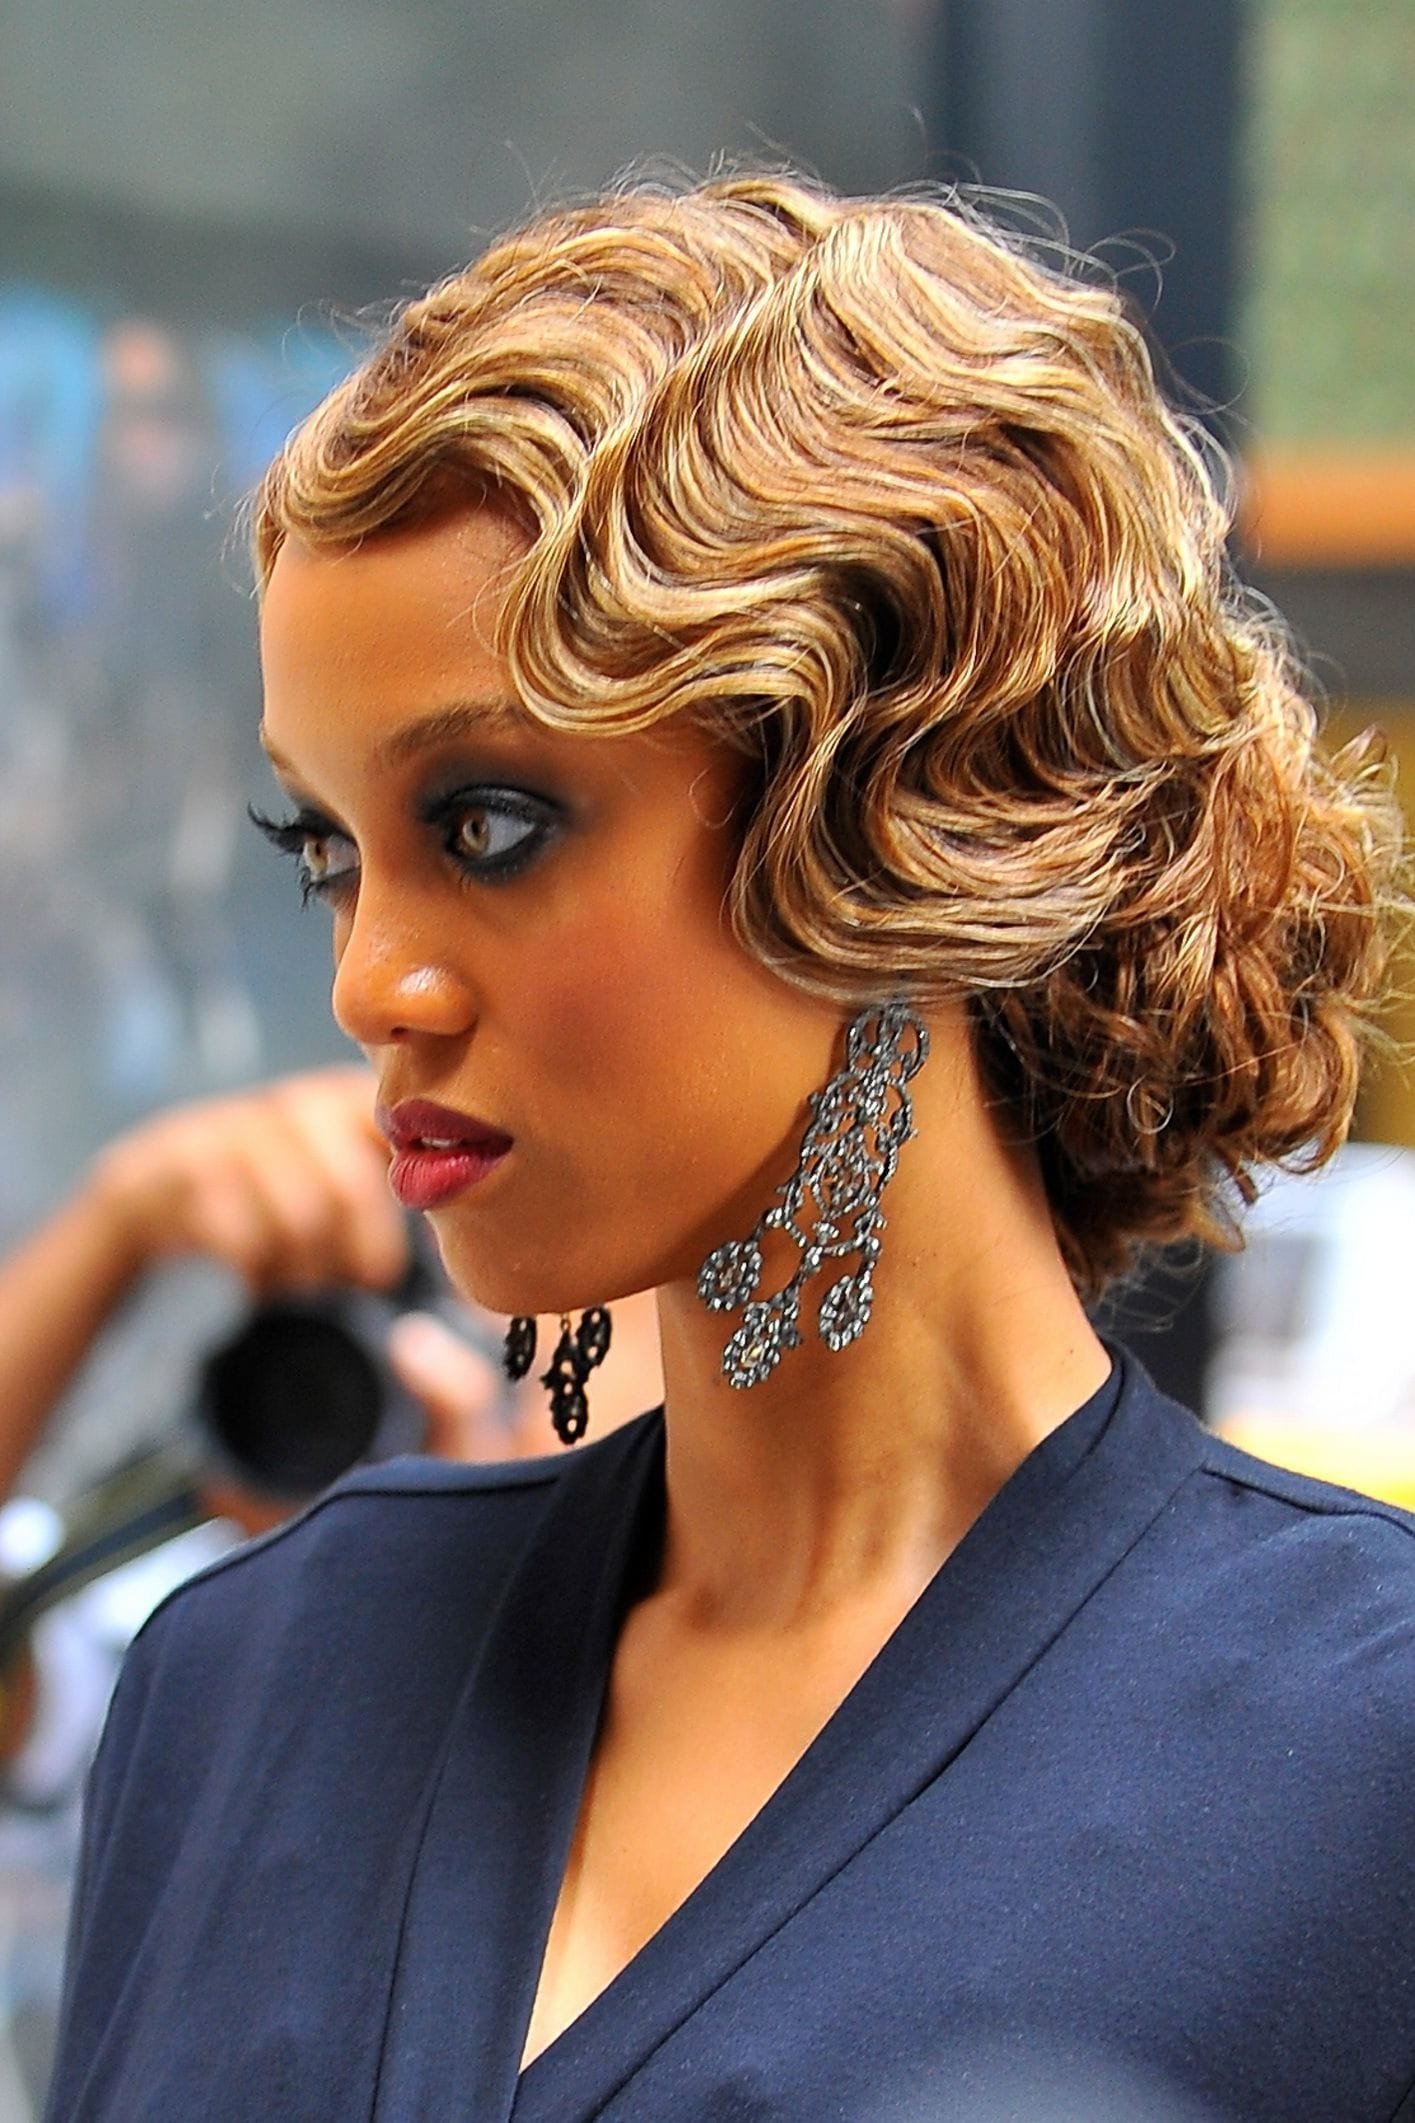 supermodel tyra banks on the set of gossip girl with 1930s finger curls